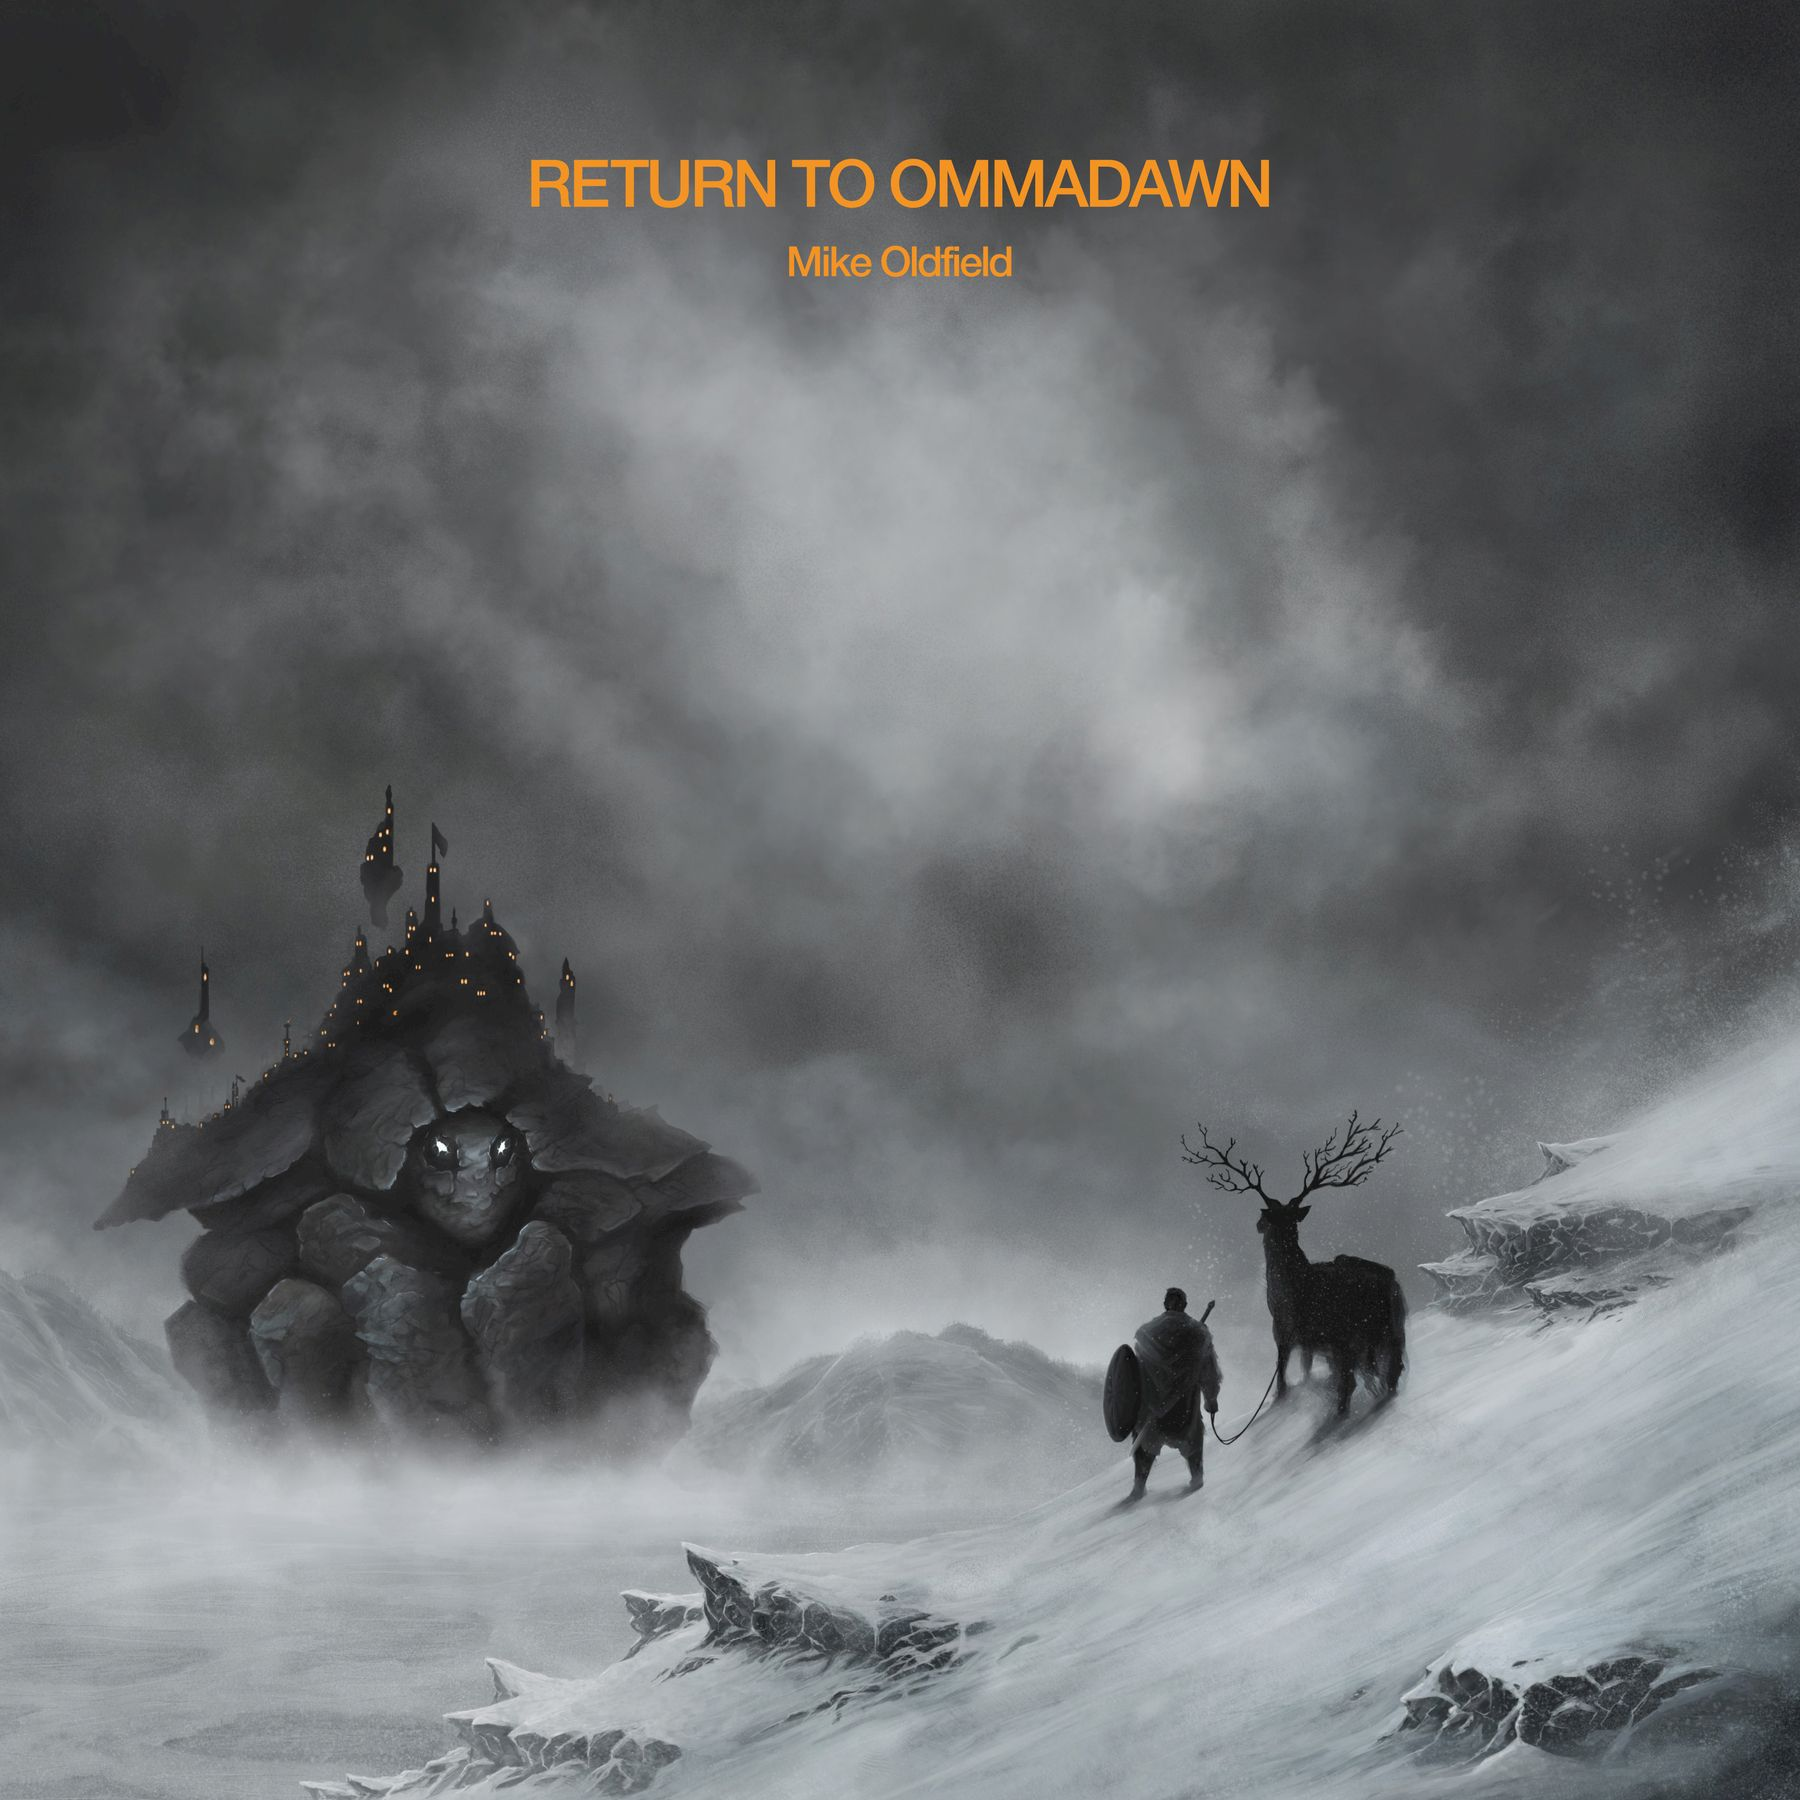 Mike Oldfield - Return To Ommadawn album cover